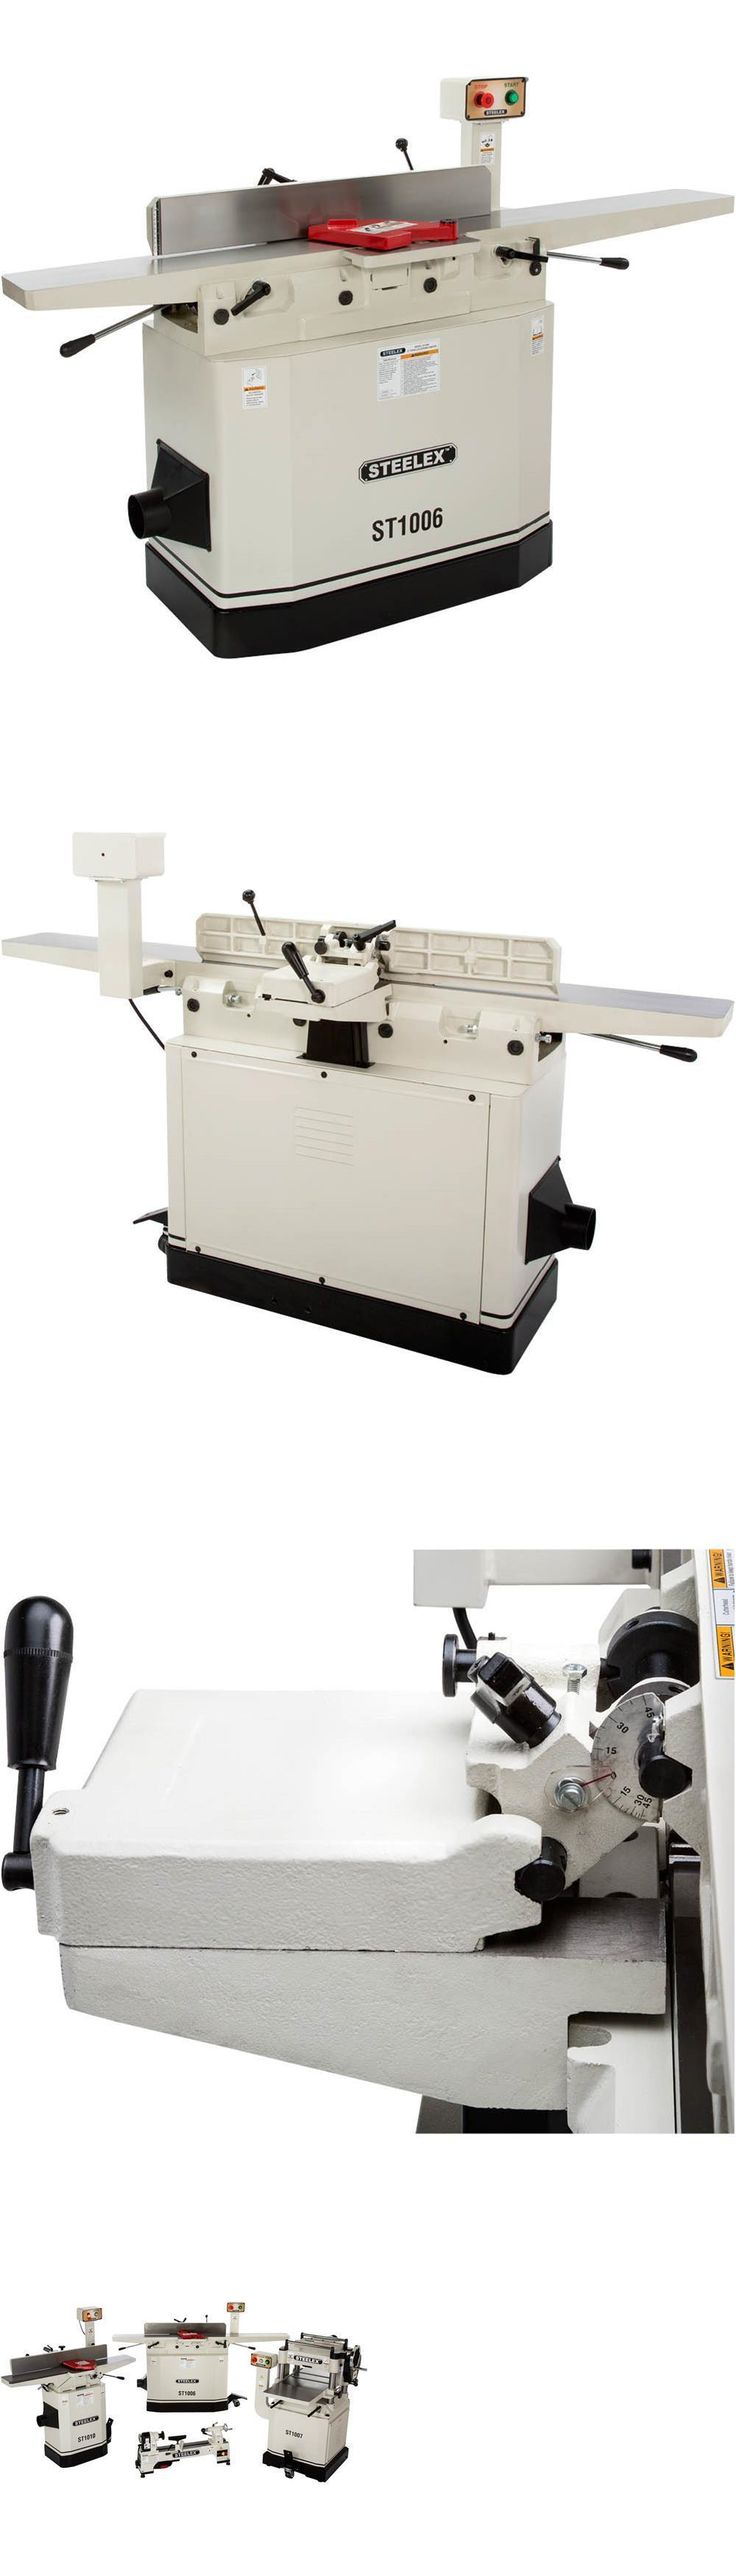 Tools 40 102 promax cast iron router table extension free shipping - Router Tables 75680 St1006 8 Jointer With Adjustable Beds Free Shipping